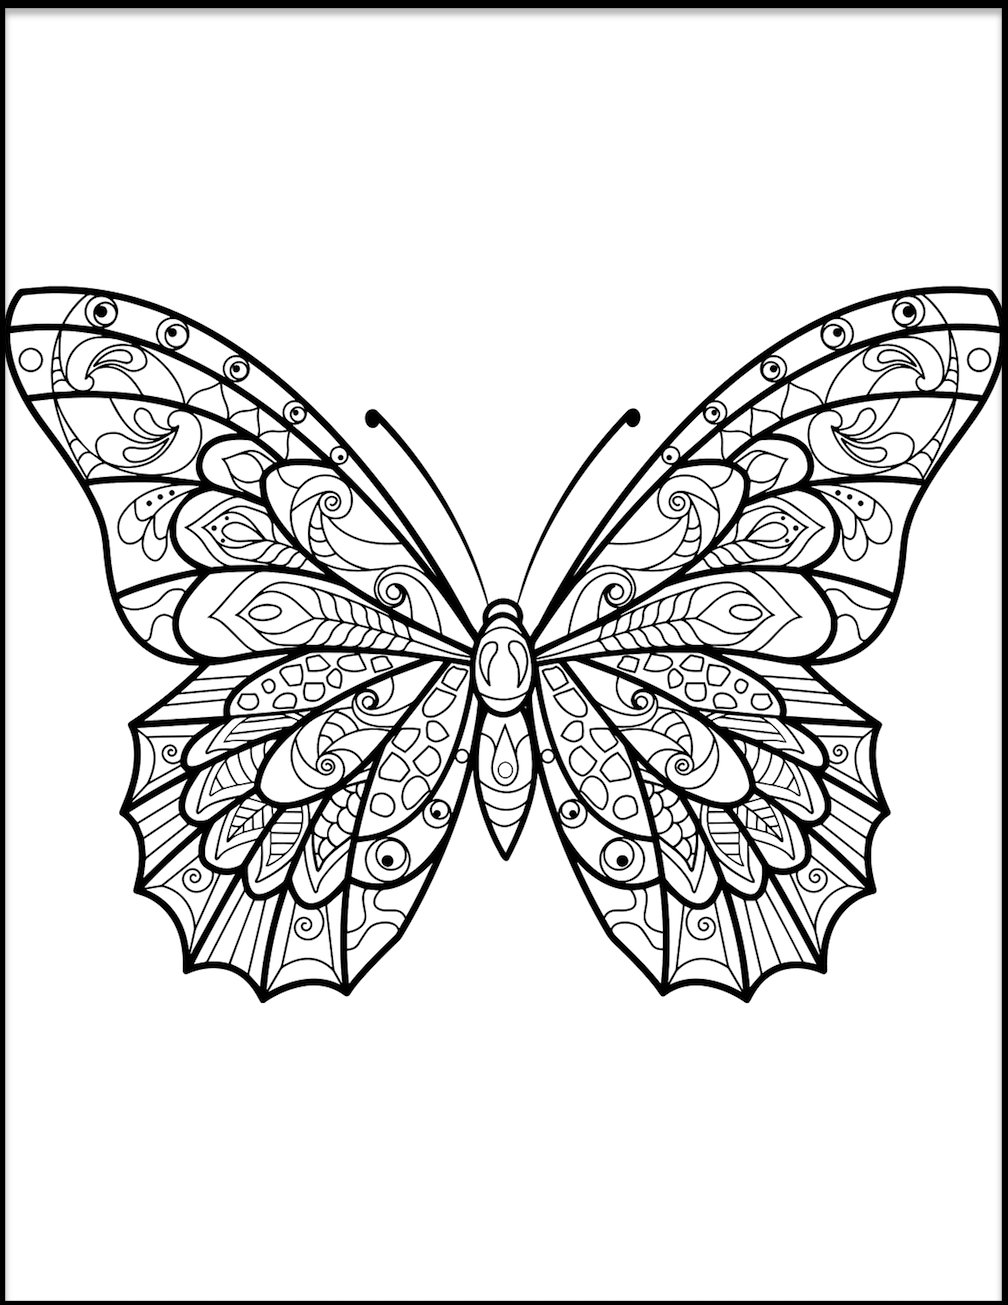 Butterfly Coloring Pages And Other Free Printable Coloring ...